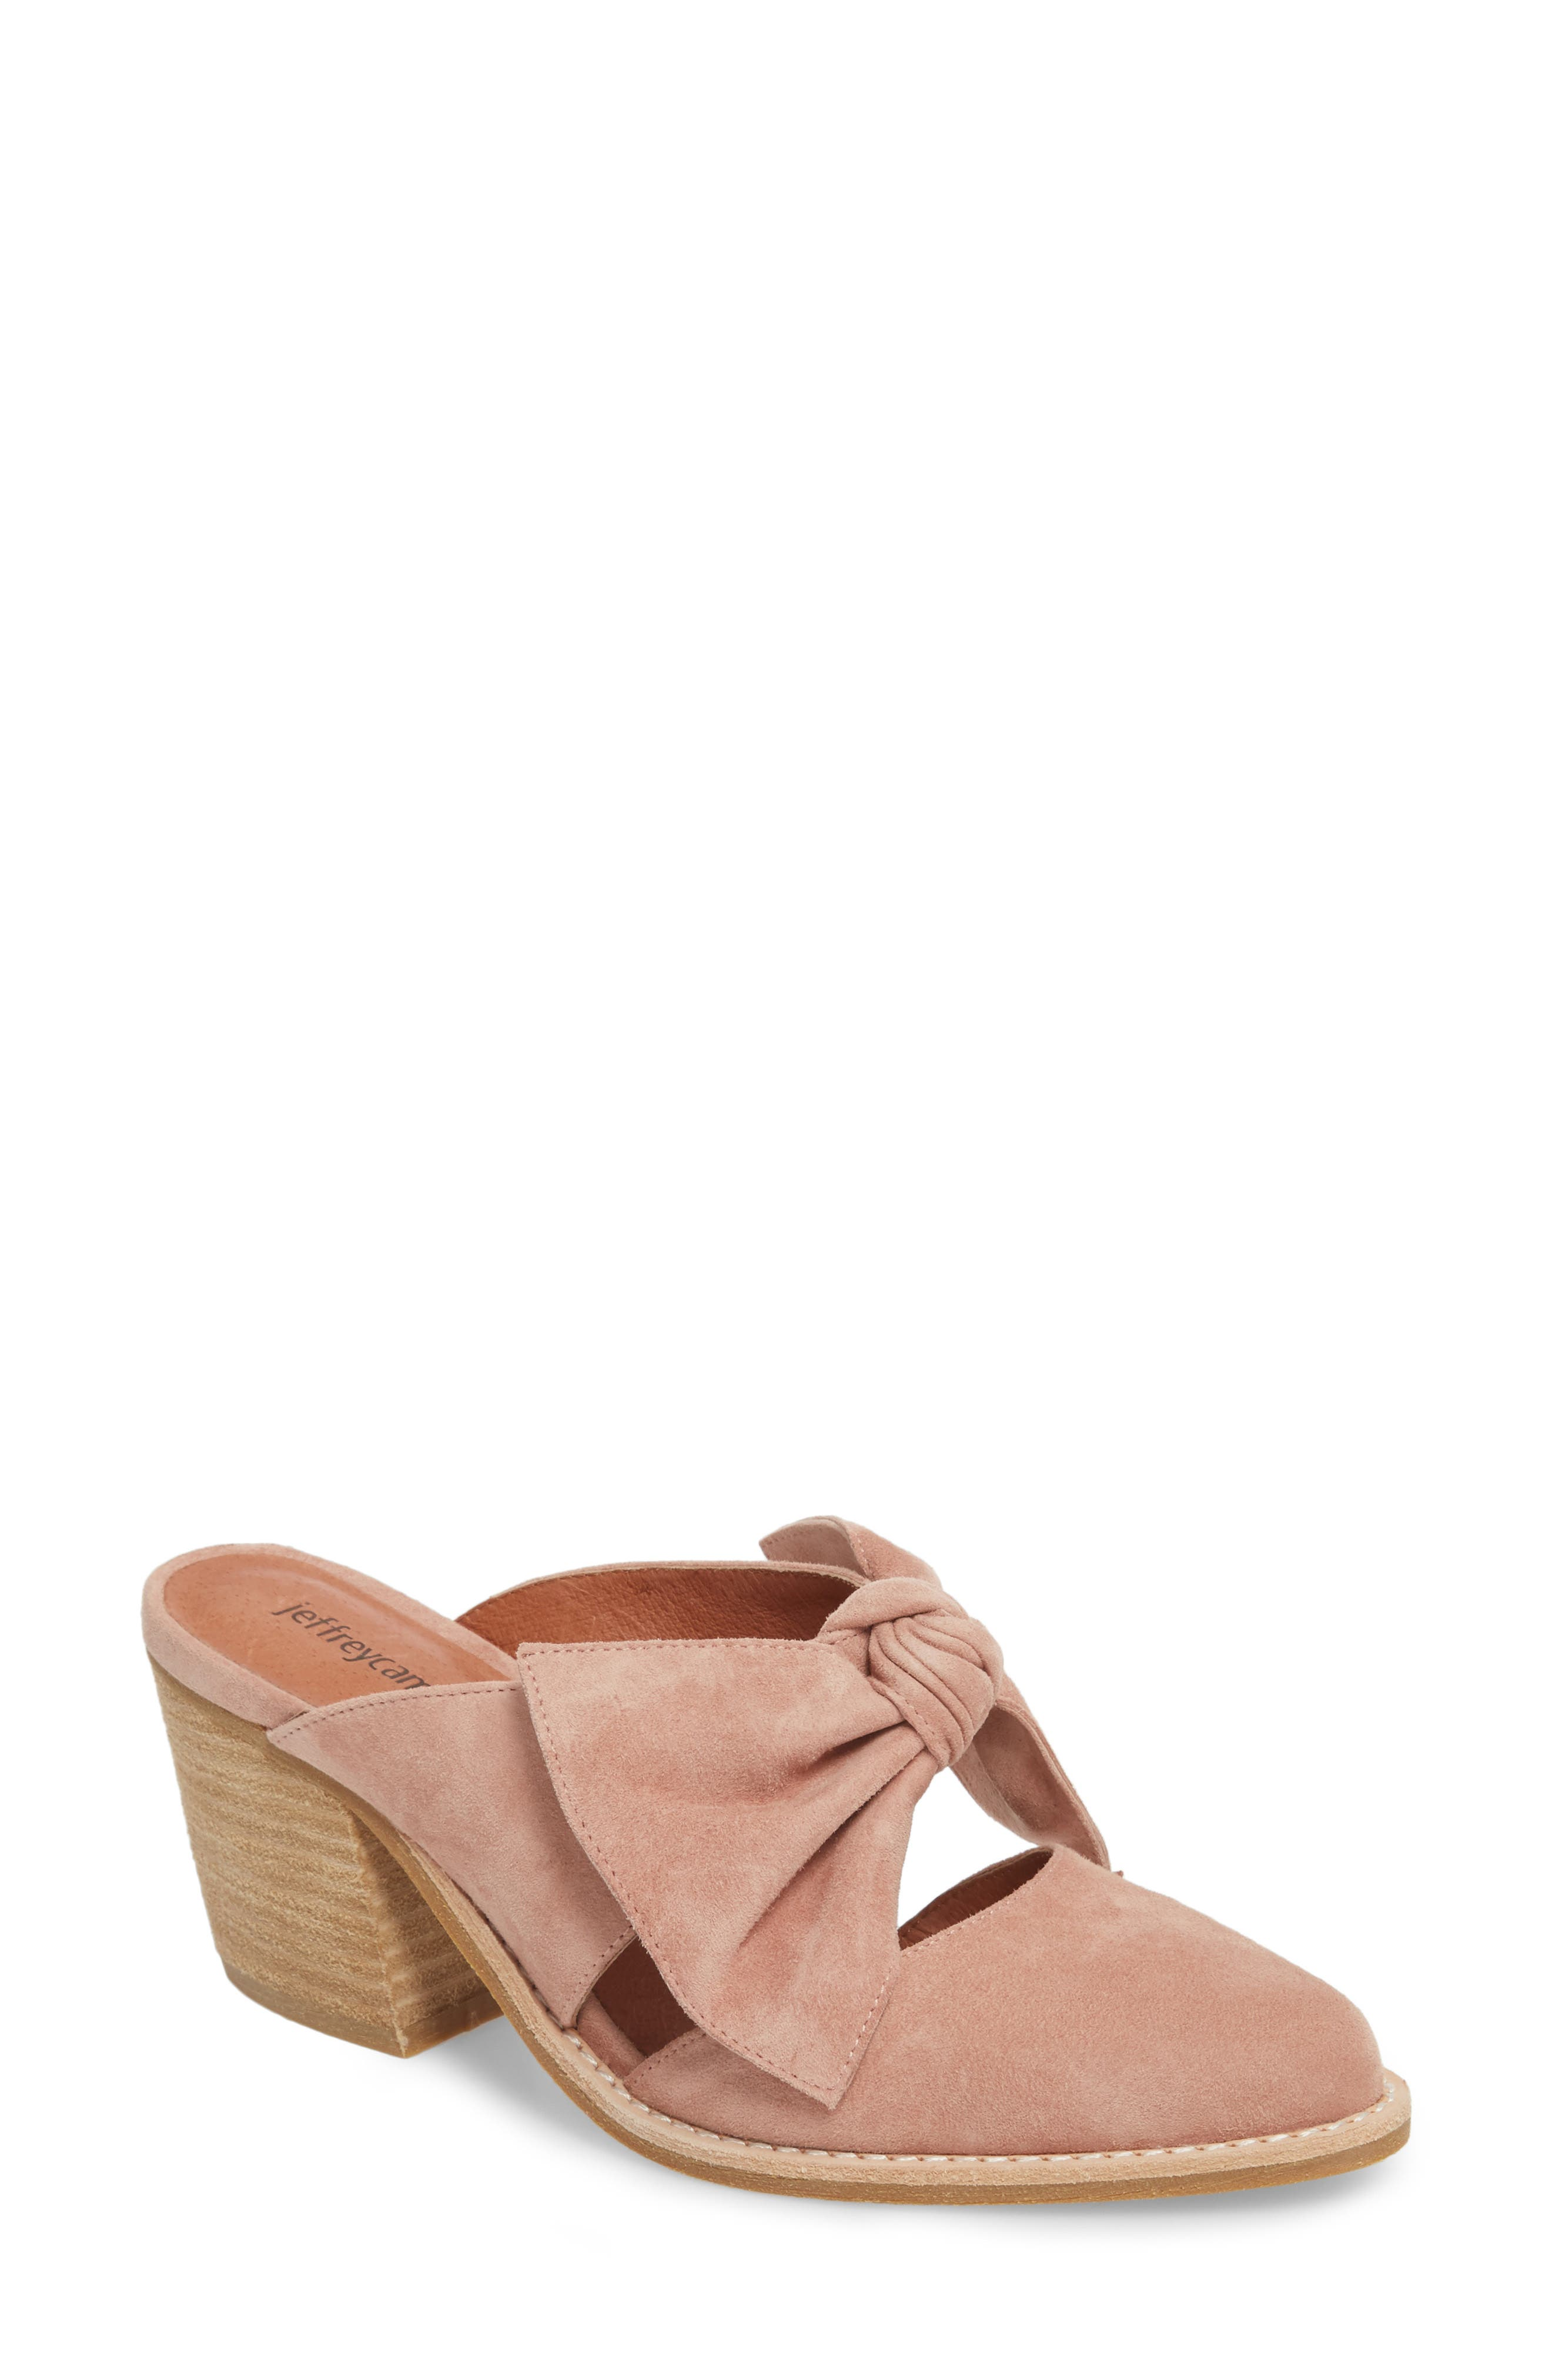 Cyrus Knotted Mary Jane Mule,                             Main thumbnail 1, color,                             Blush Suede